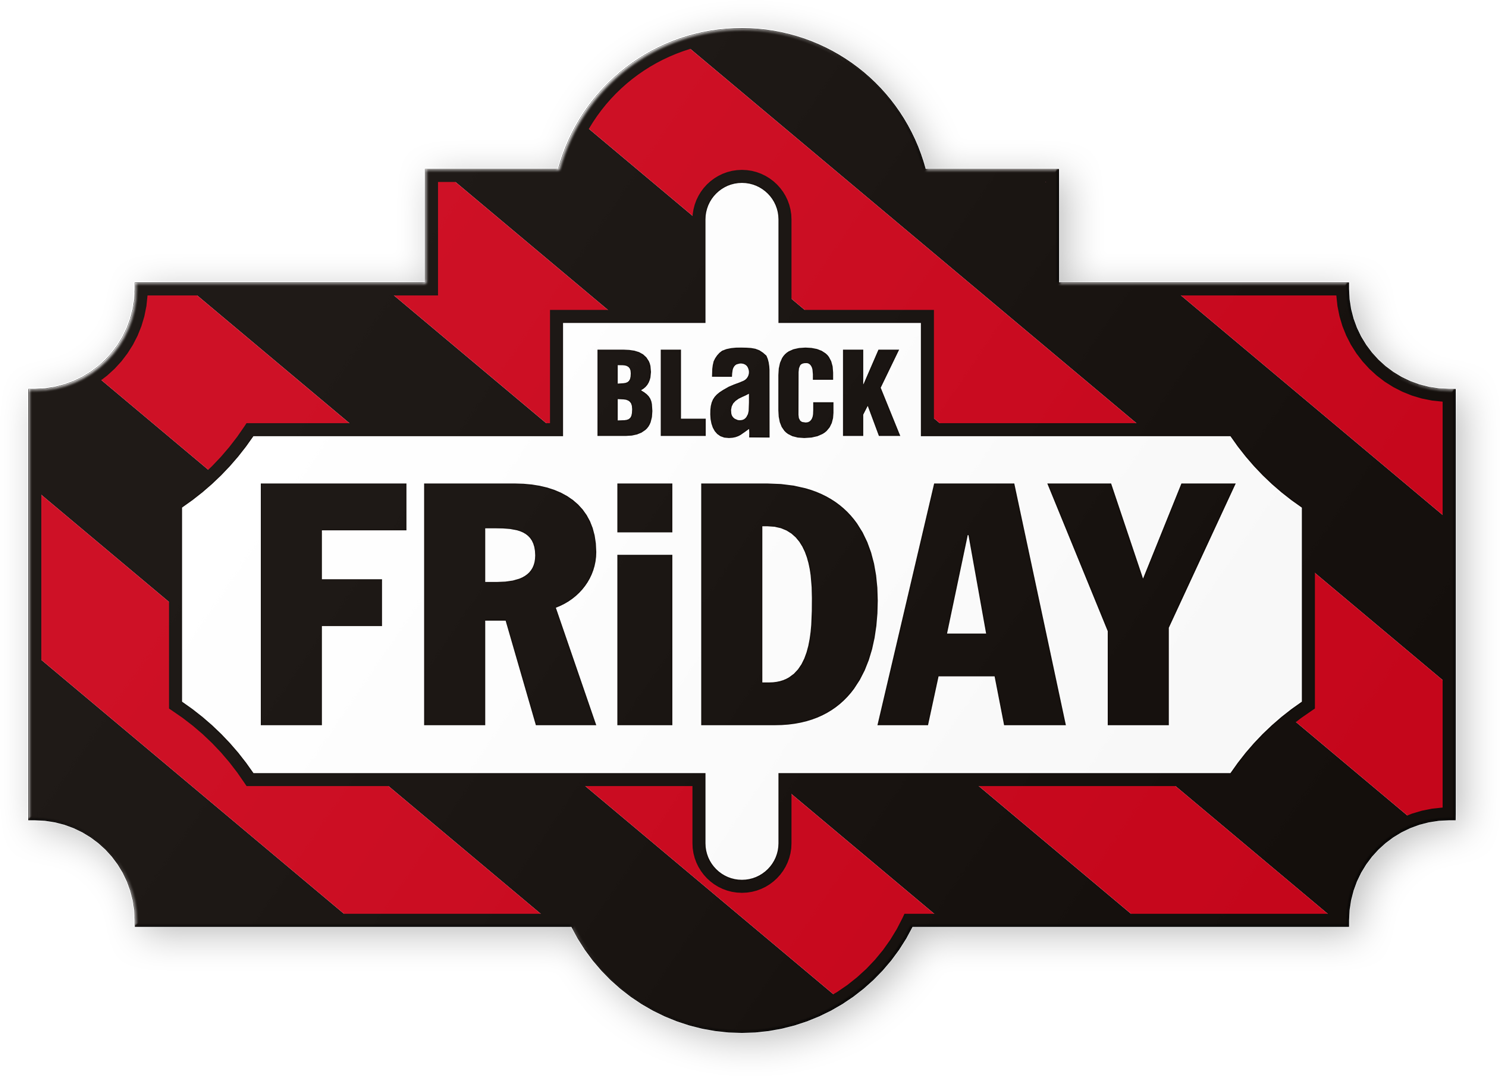 Check out all BestBuy Black Friday Deals. ad Past News BestBuy to Offer Free Shipping SiteWide for Holidays. Best Buy announced that they will be offering free shipping on all orders from Oct 29th through Dec 25, (See details).